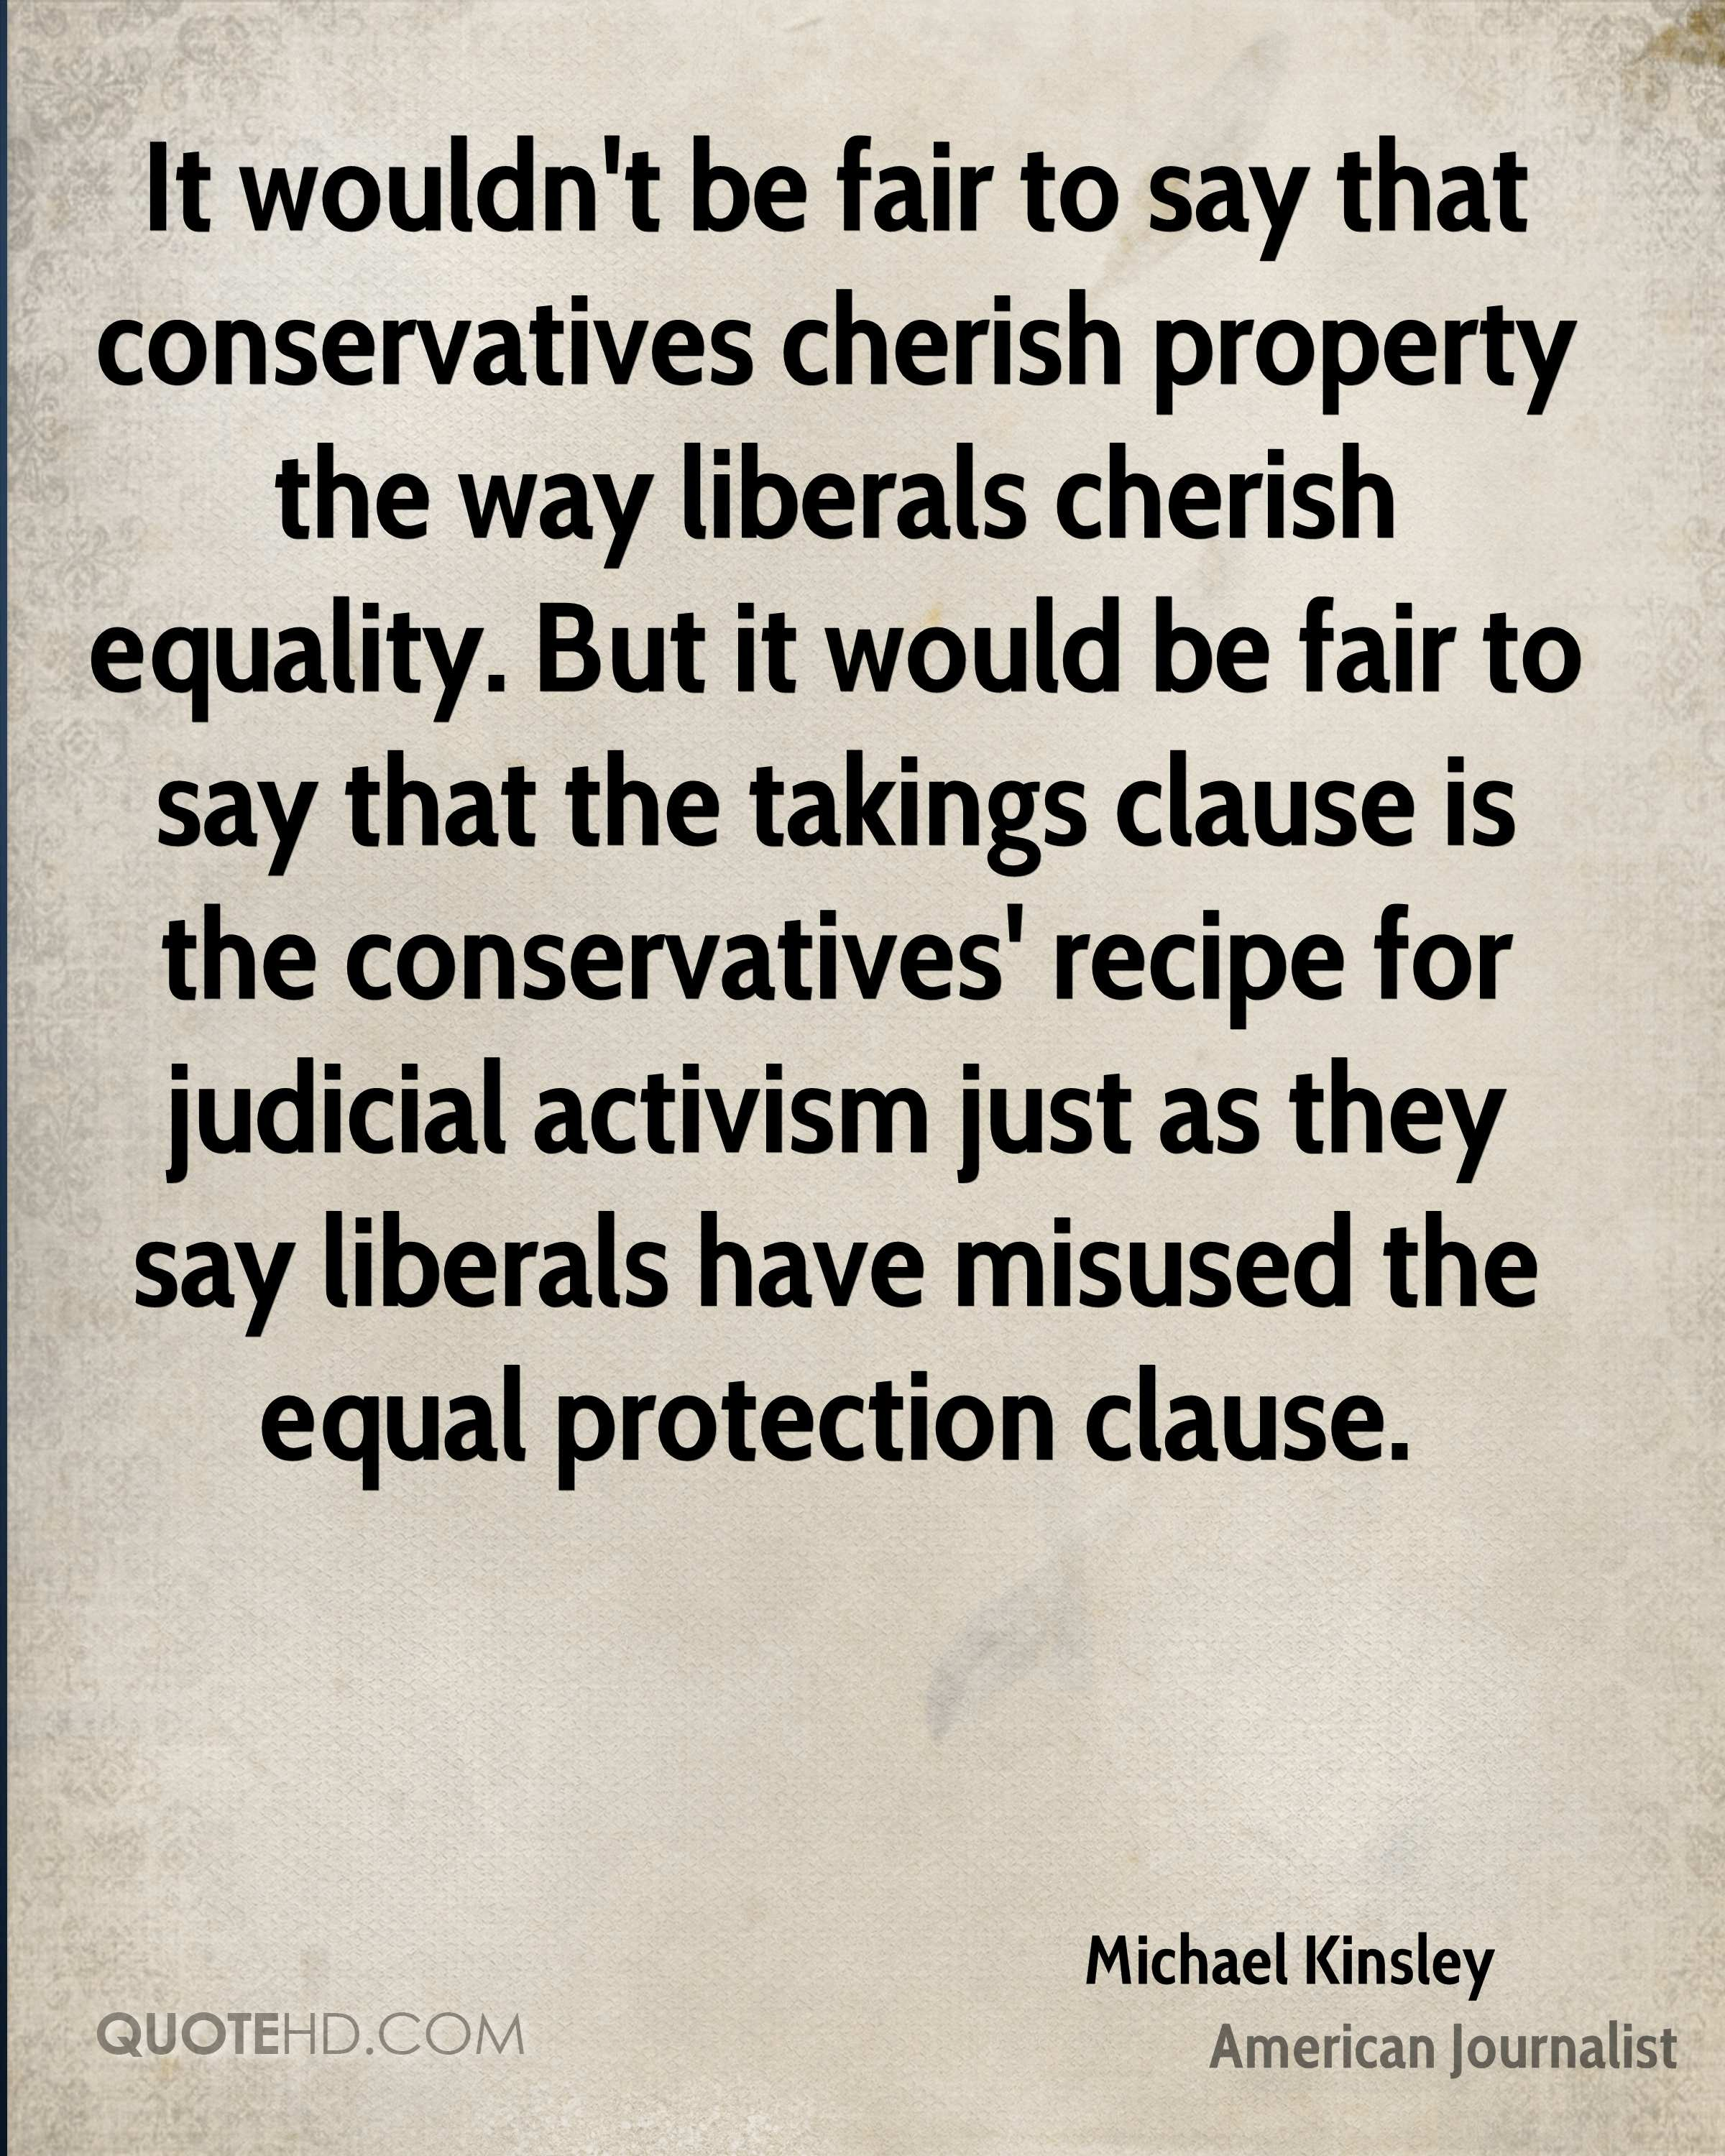 It wouldn't be fair to say that conservatives cherish property the way liberals cherish equality. But it would be fair to say that the takings clause is the conservatives' recipe for judicial activism just as they say liberals have misused the equal protection clause.